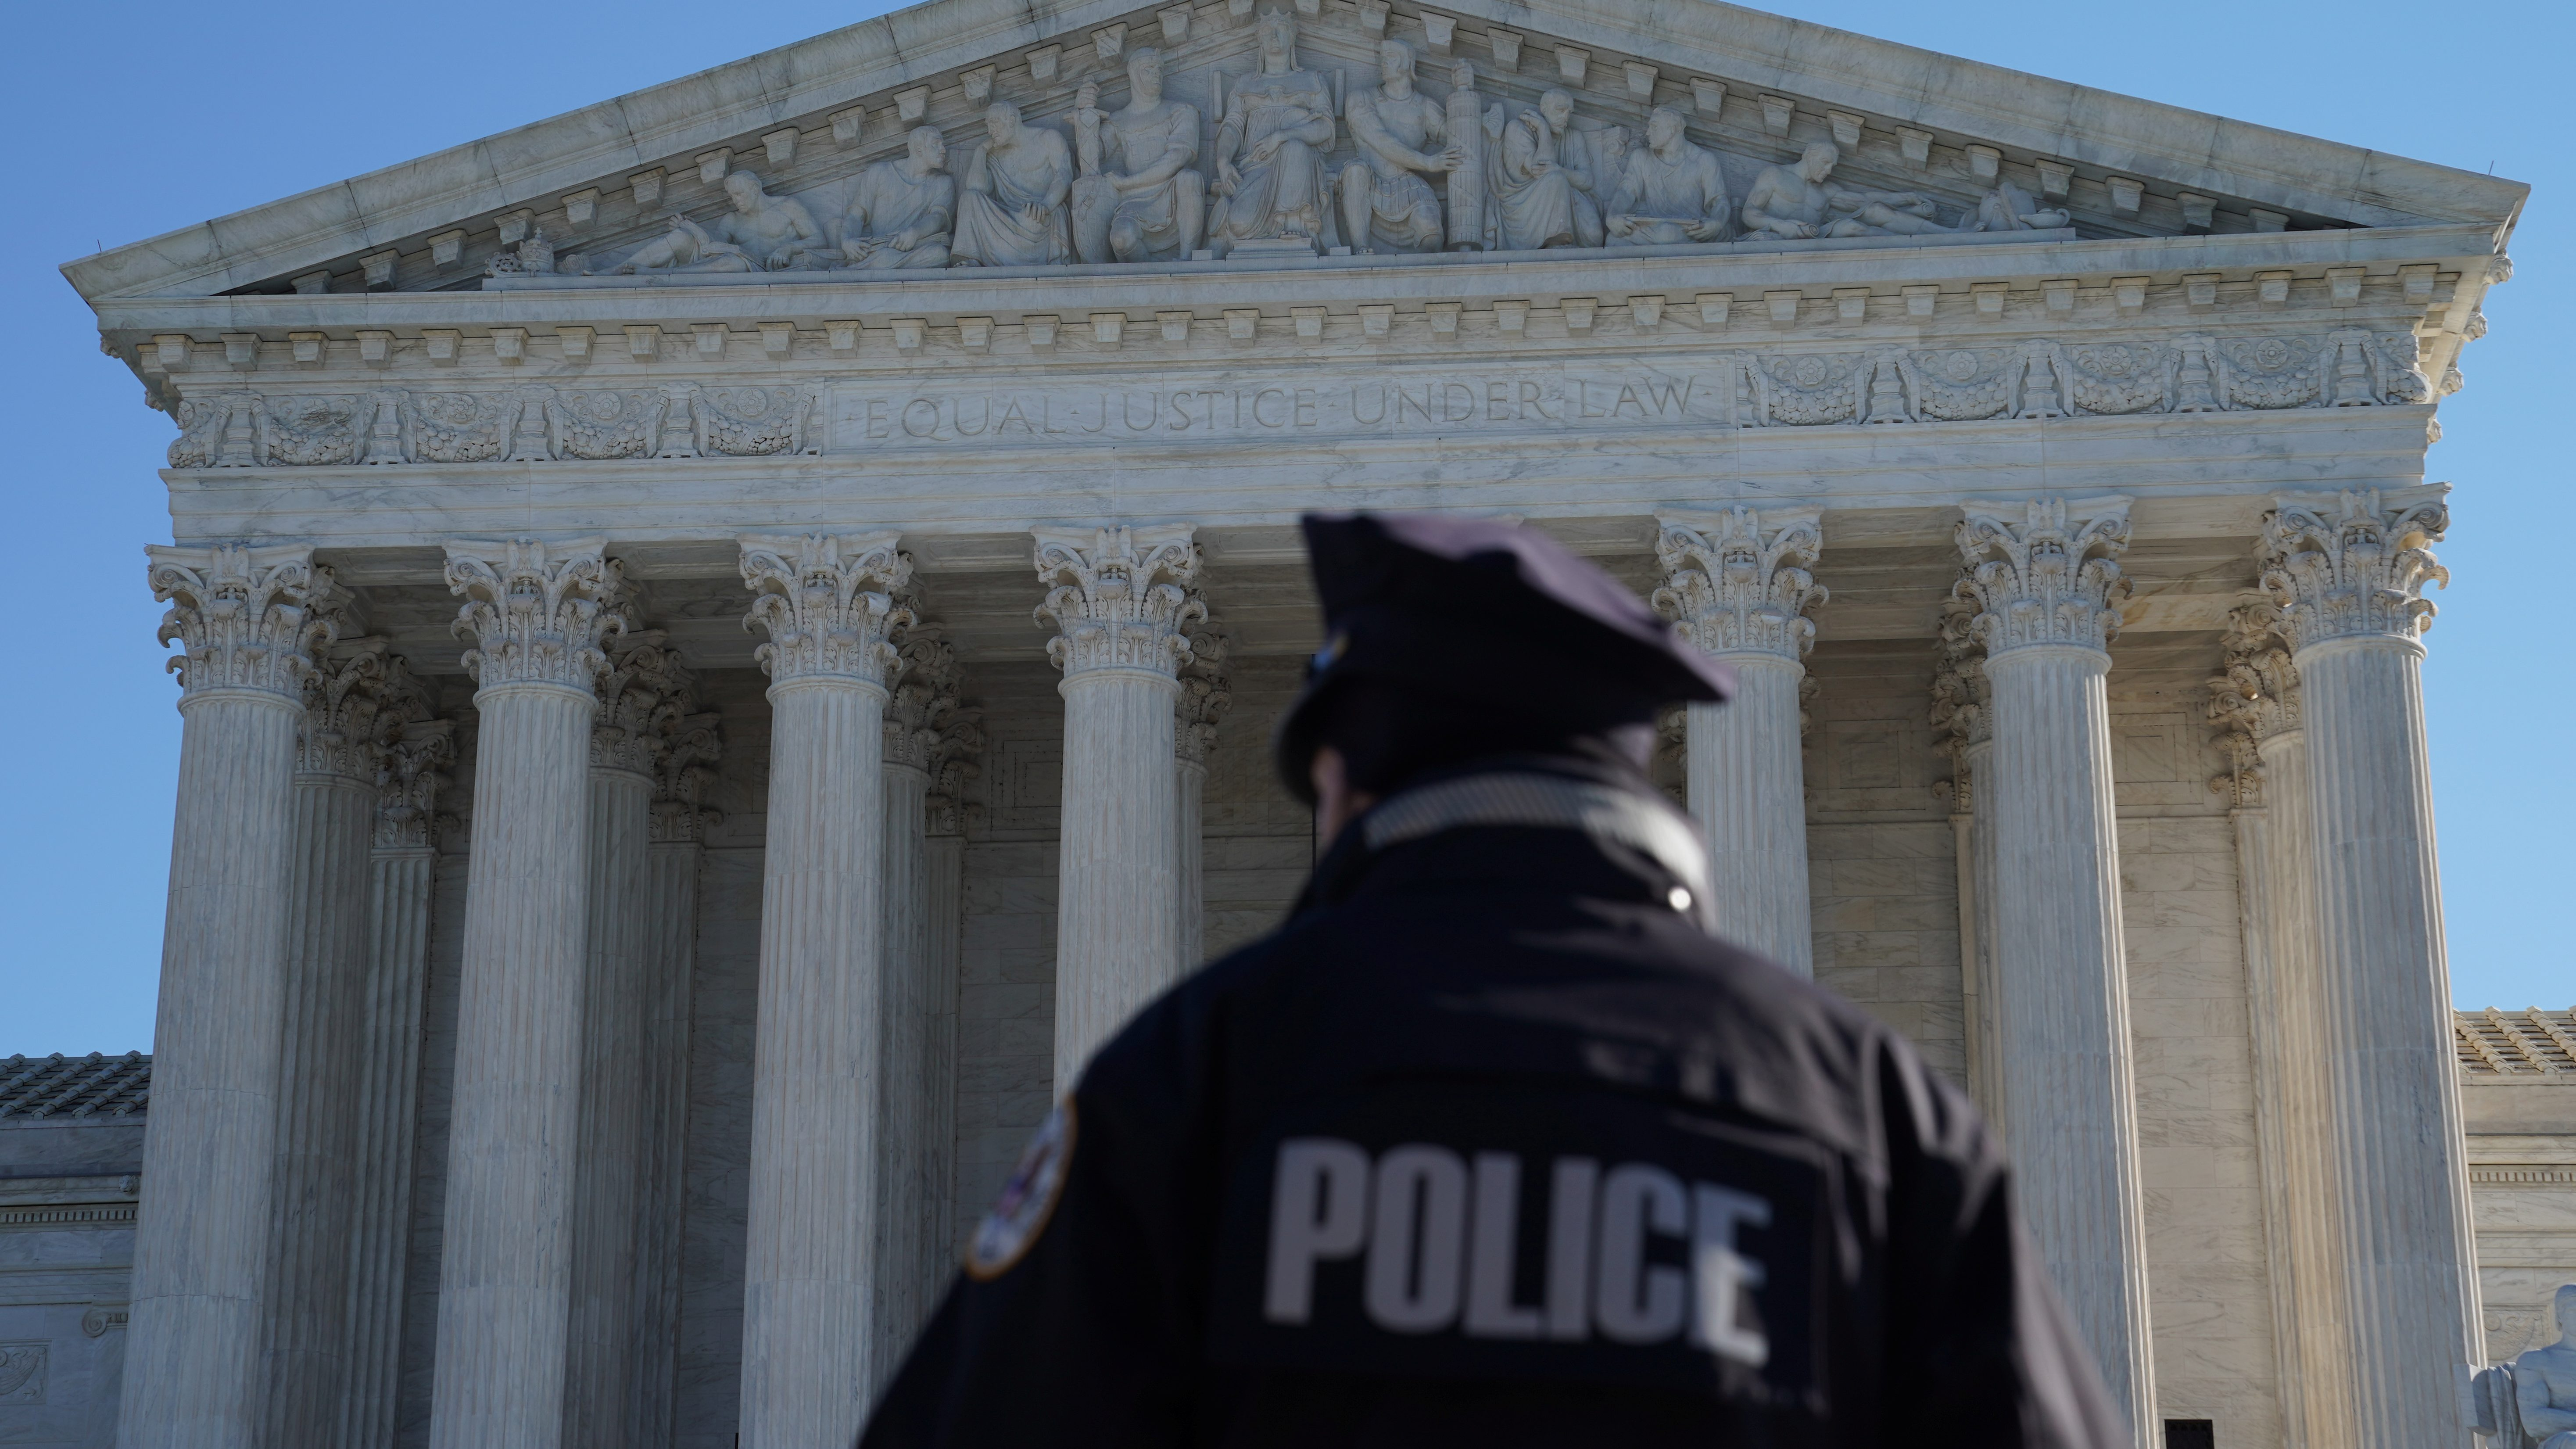 A police officer in front of the Supreme Court